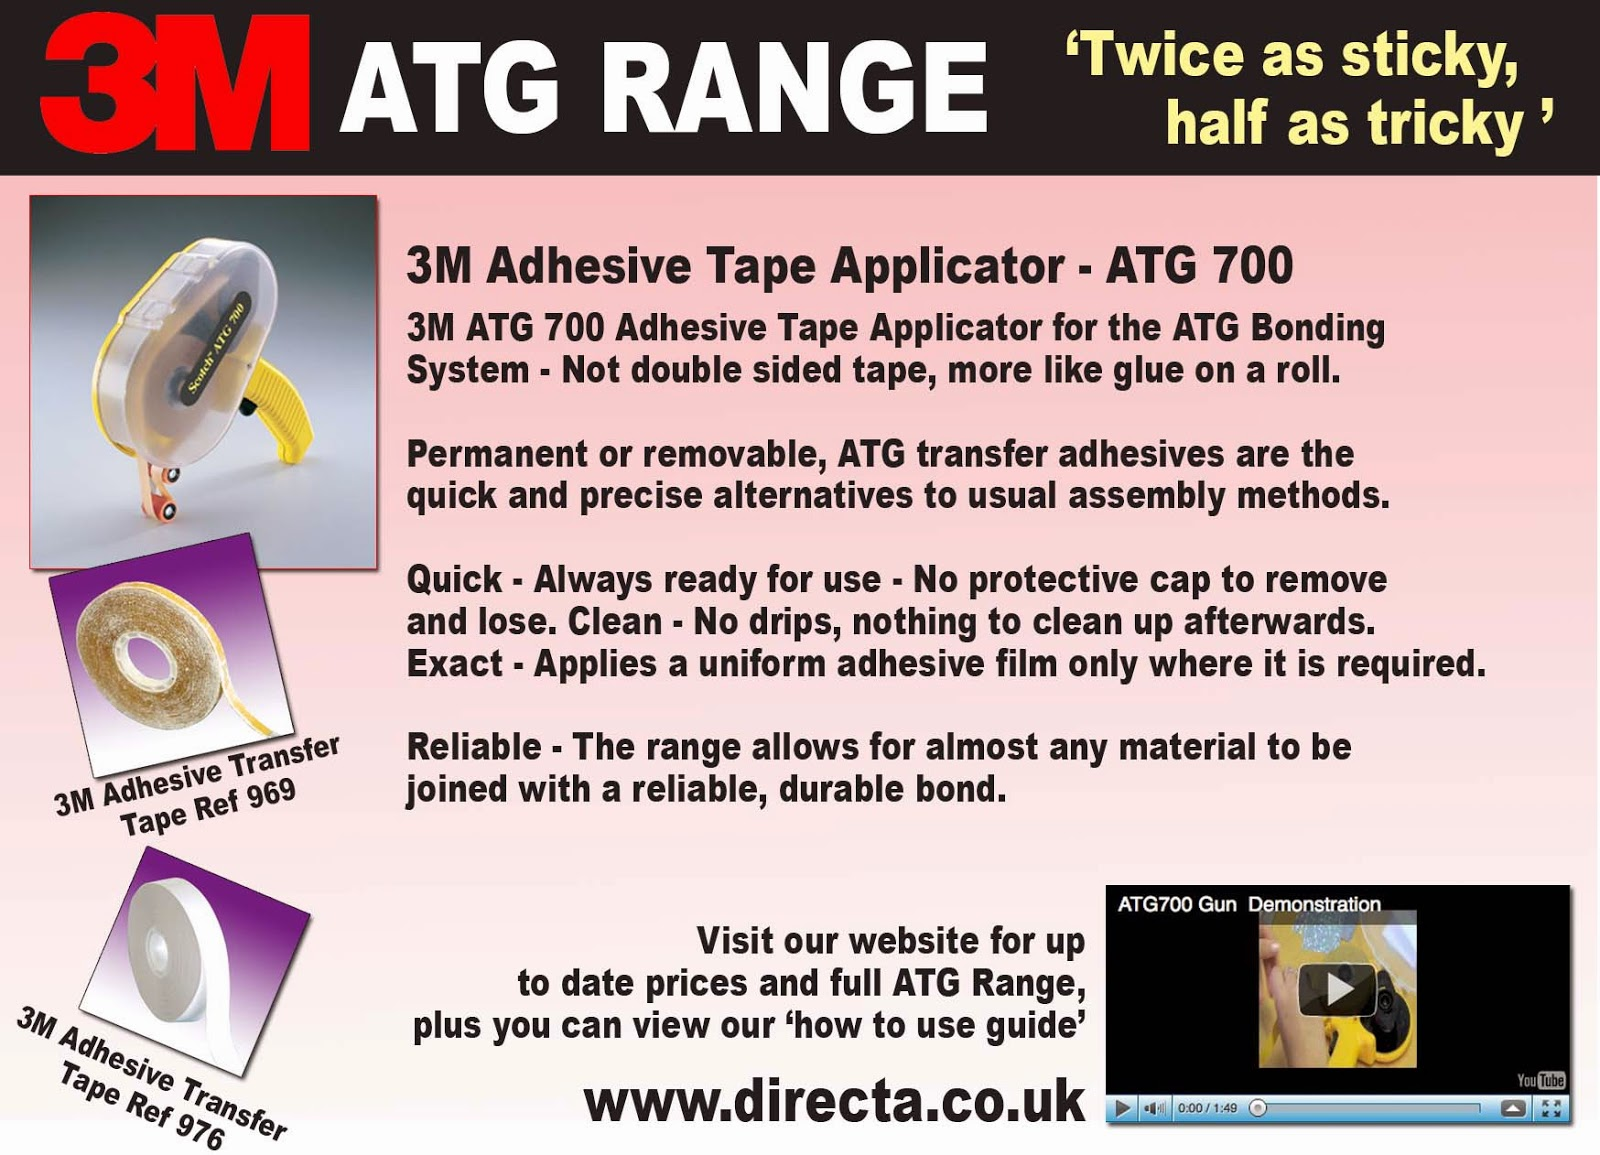 http://www.directa.co.uk/?route=product%2Fsearch&search=atg